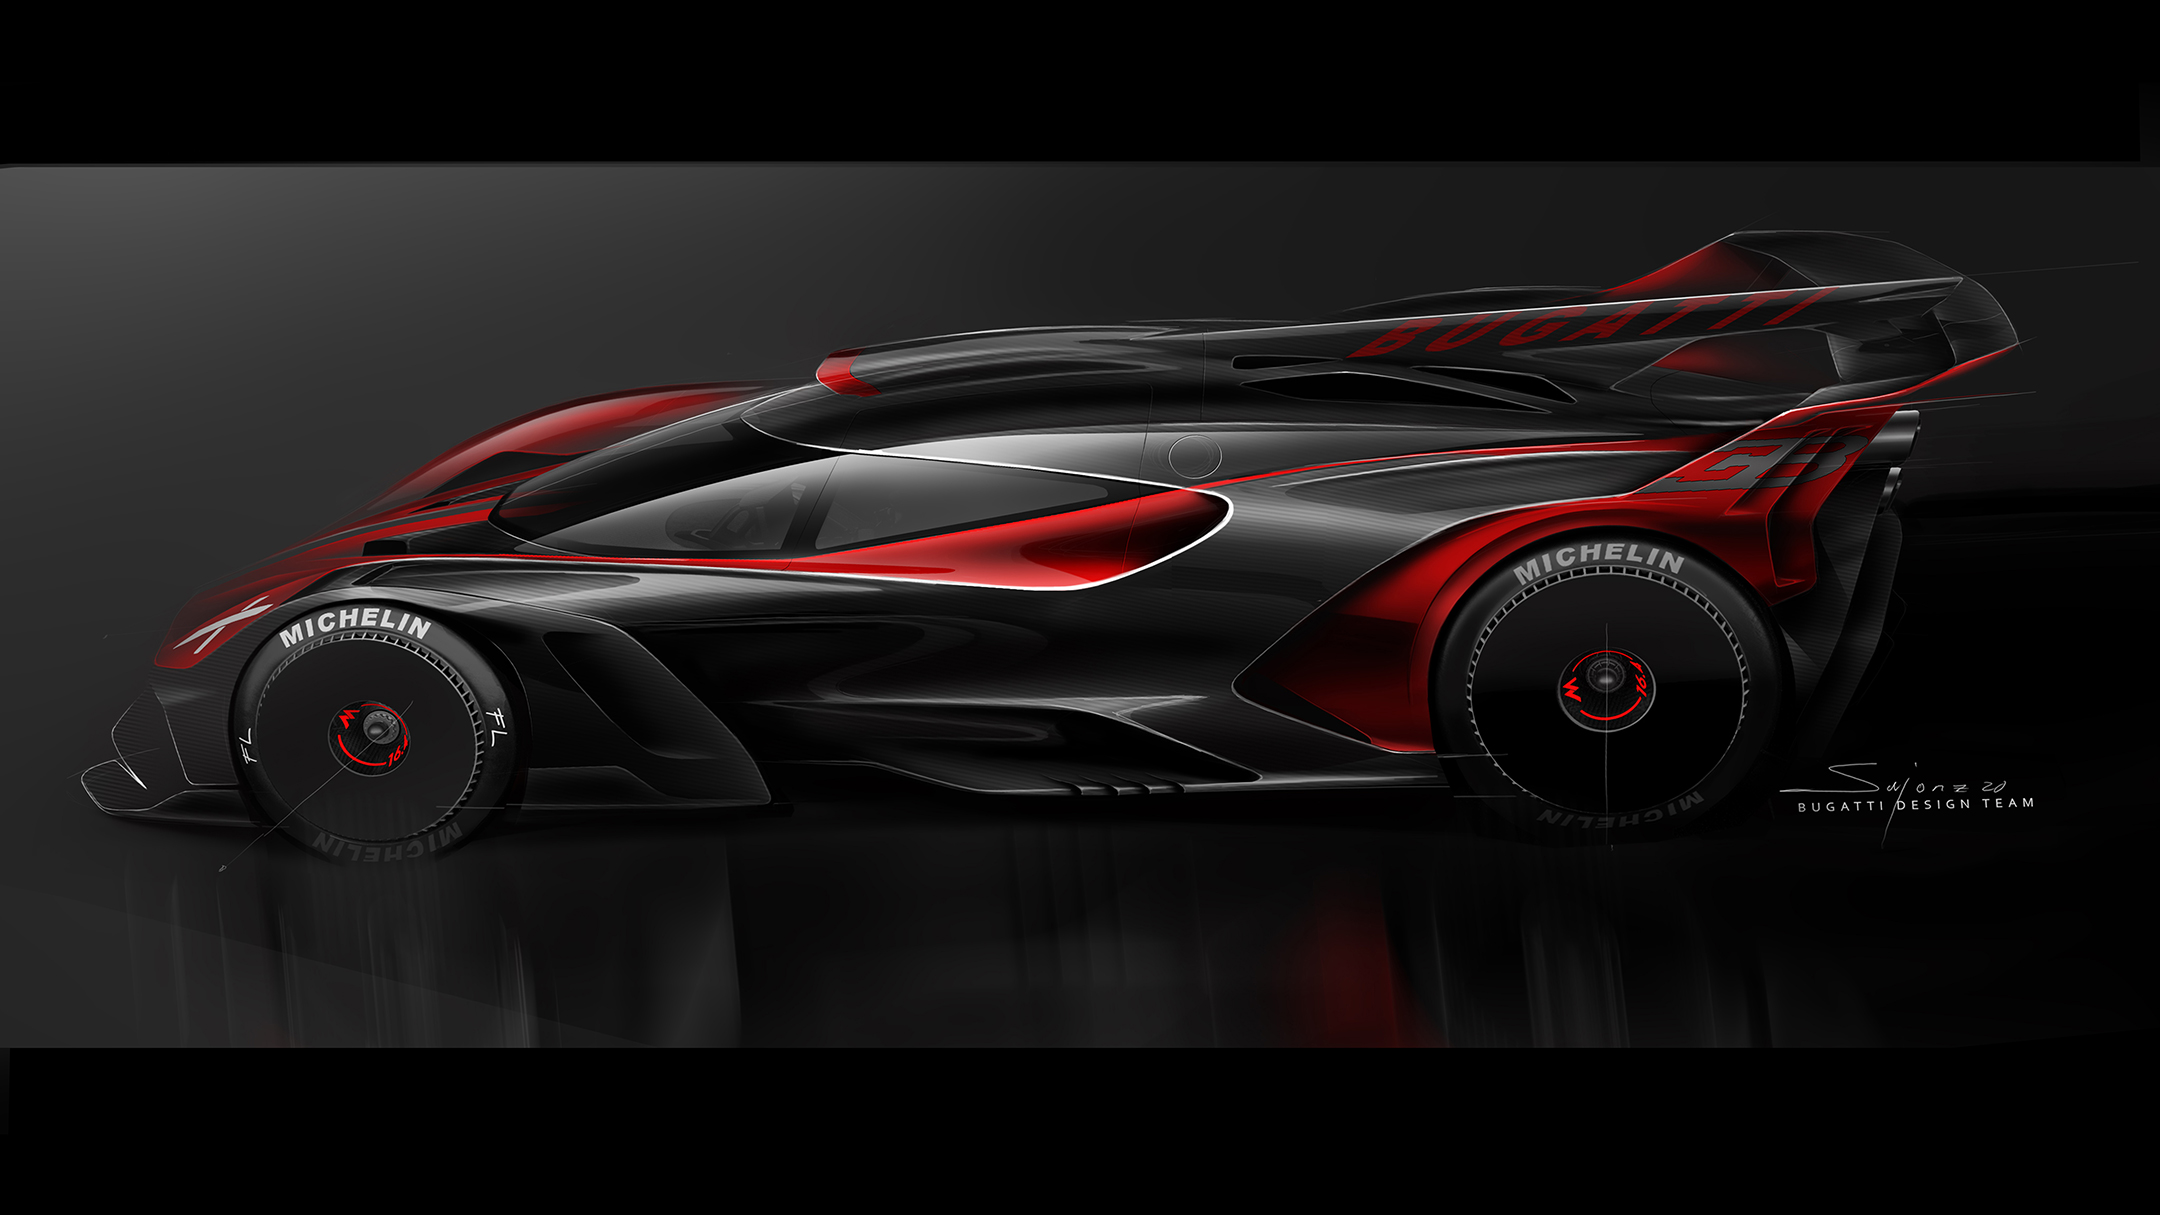 Bugatti Bolide - 2020 - sketch - side-face / profil - red / rouge - dark mode